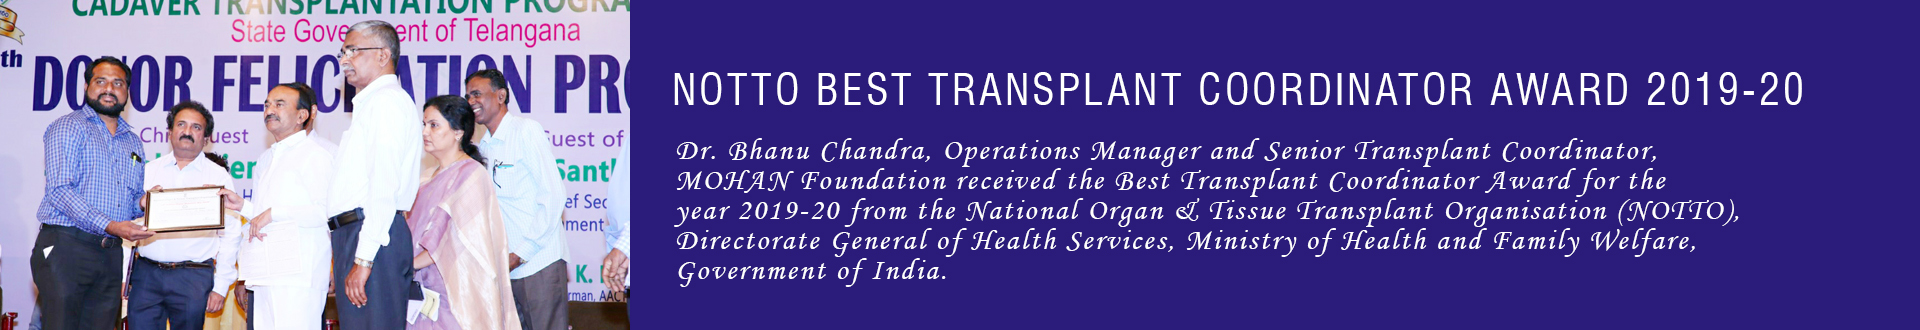 Dr. Bhanu Chandra receives Best Transplant Coordinator Award from NOTTO